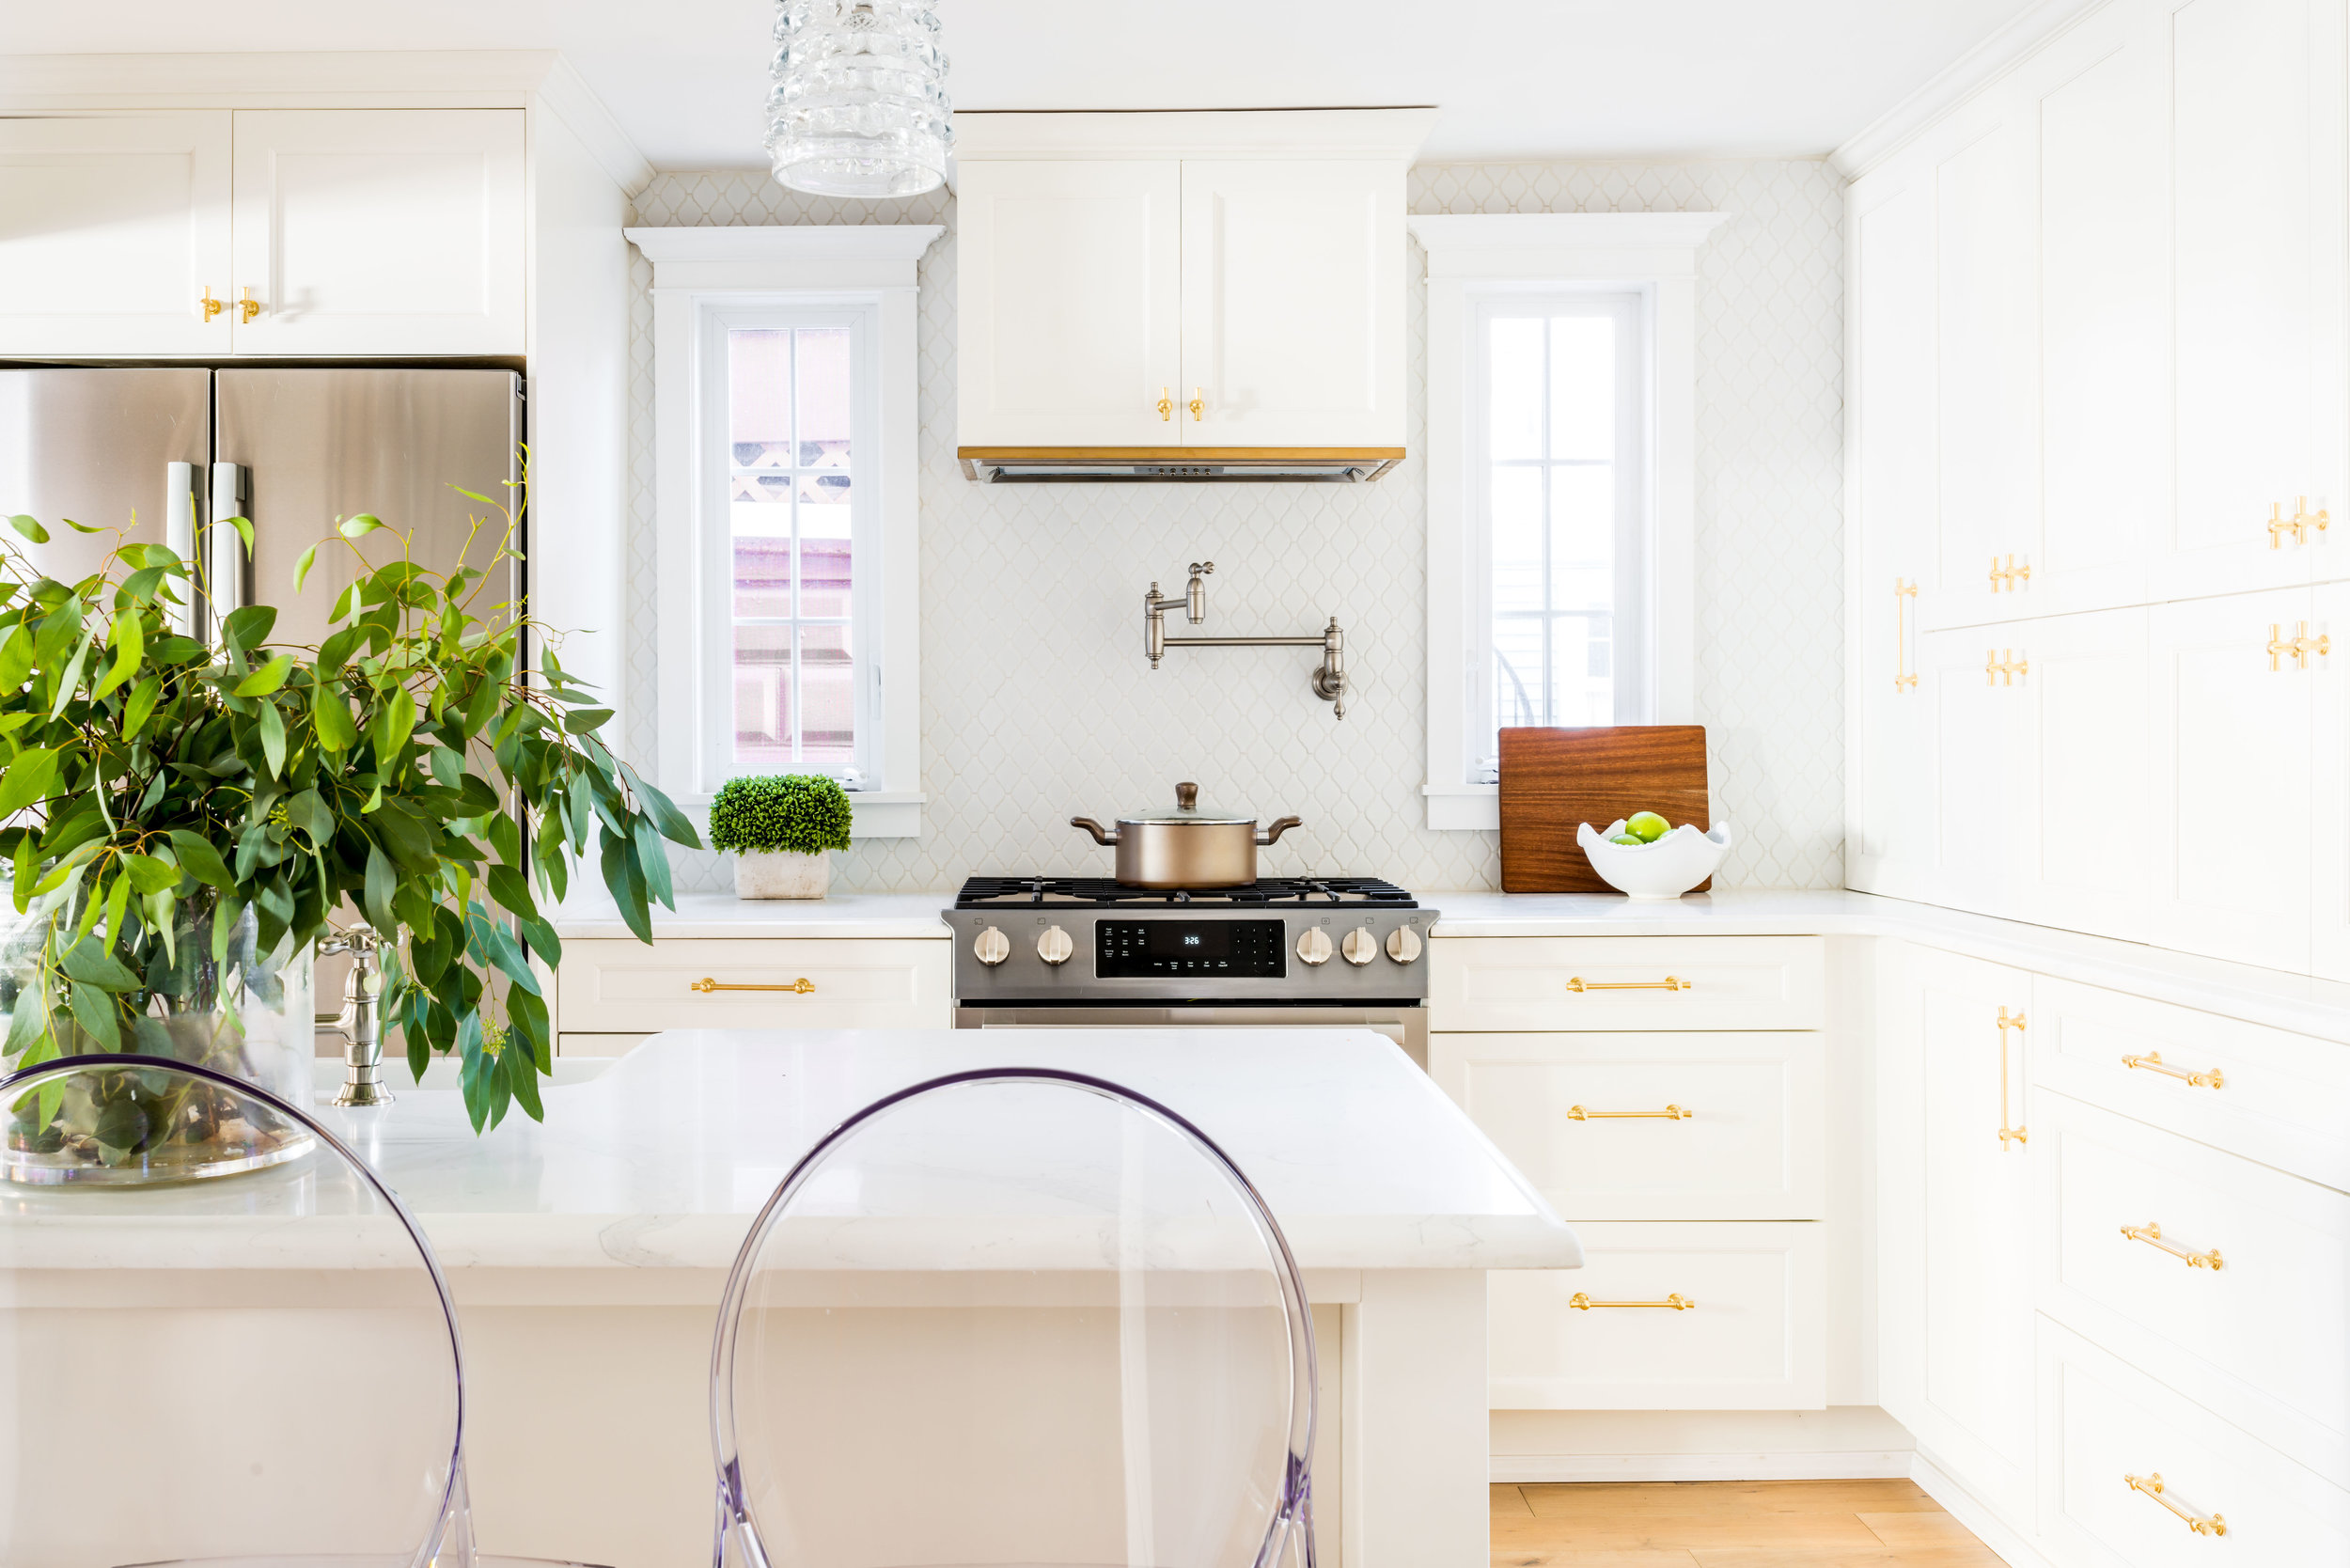 Hardware: Cowan from  Rejuvenation Hardware ; Long Ribbon Pendant Light from  Jamie Young Co .; fixtures:  Kingston Brass ; Flooring: BuildDirect. Backsplash:  Merola Tile from Home Depot , in Arabesque Glossy. Design:  Molly Pidgeon, Principal & Interior Designer, House of Dietrich  // Photo:  Jessica Delaney